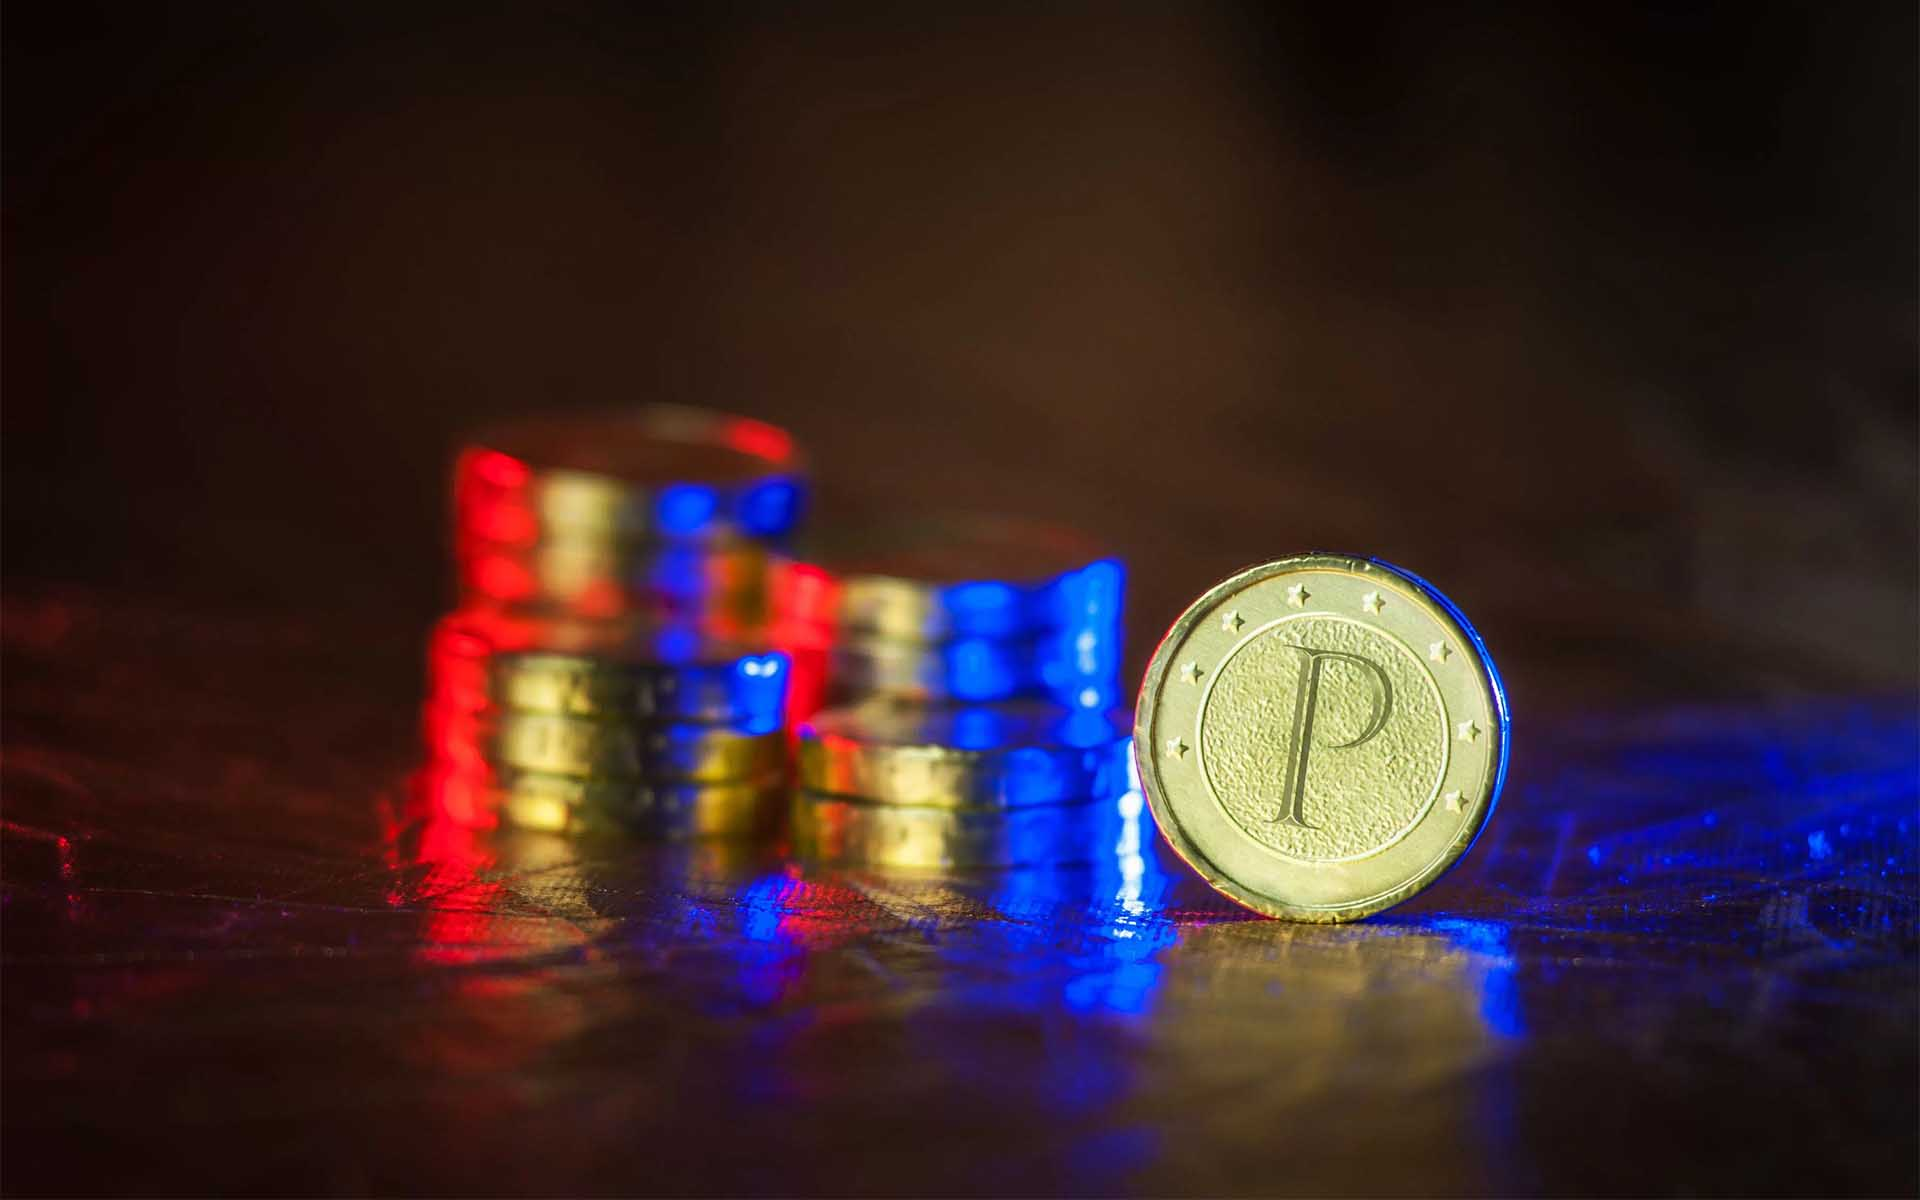 Coinsecure Goes For Petro?